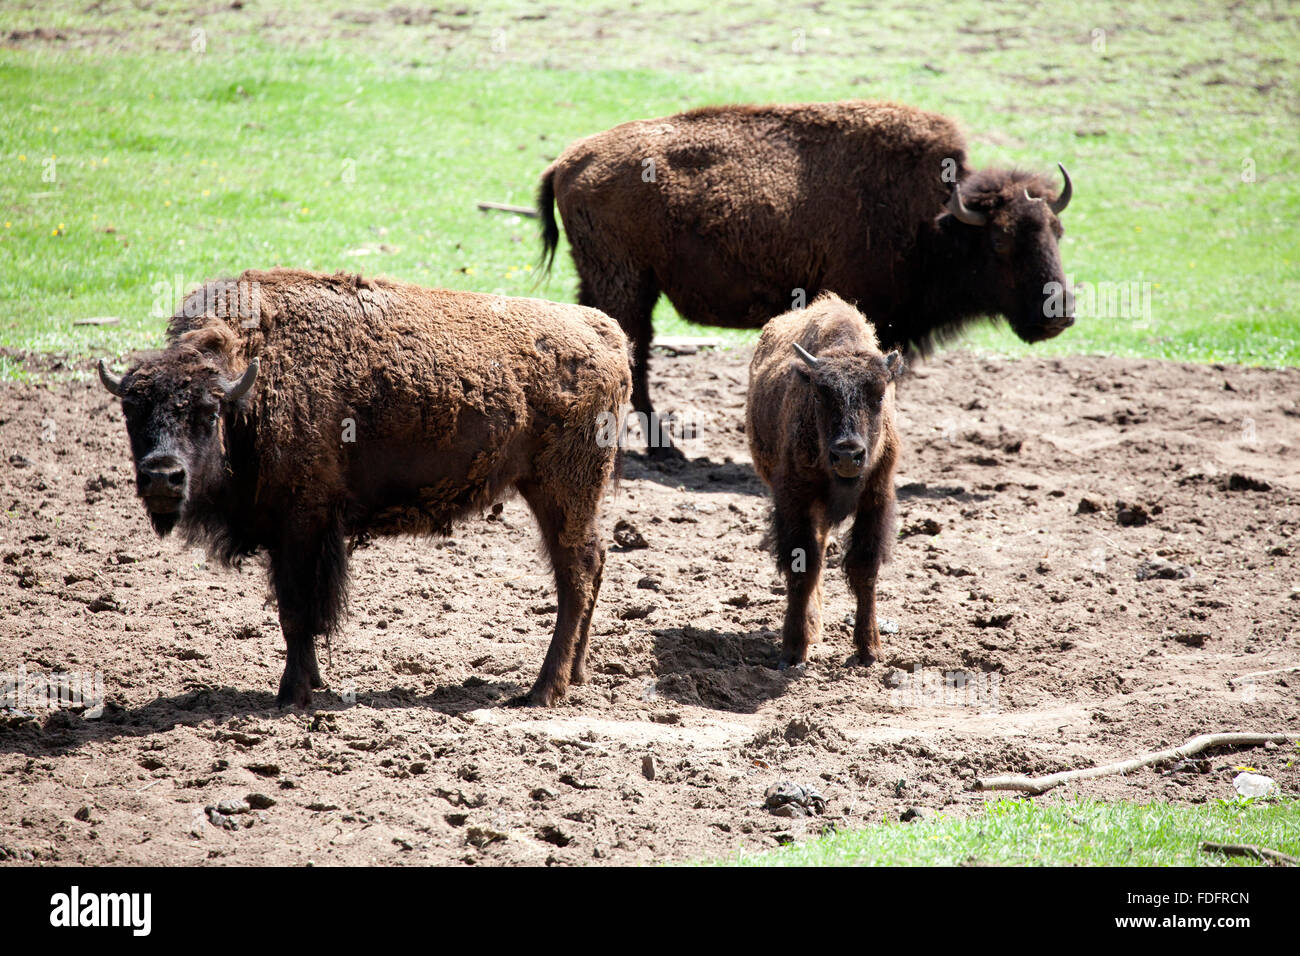 Adult buffalos protecting a young calf at a commercial ranch. Pierz Minnesota MN USA Stock Photo